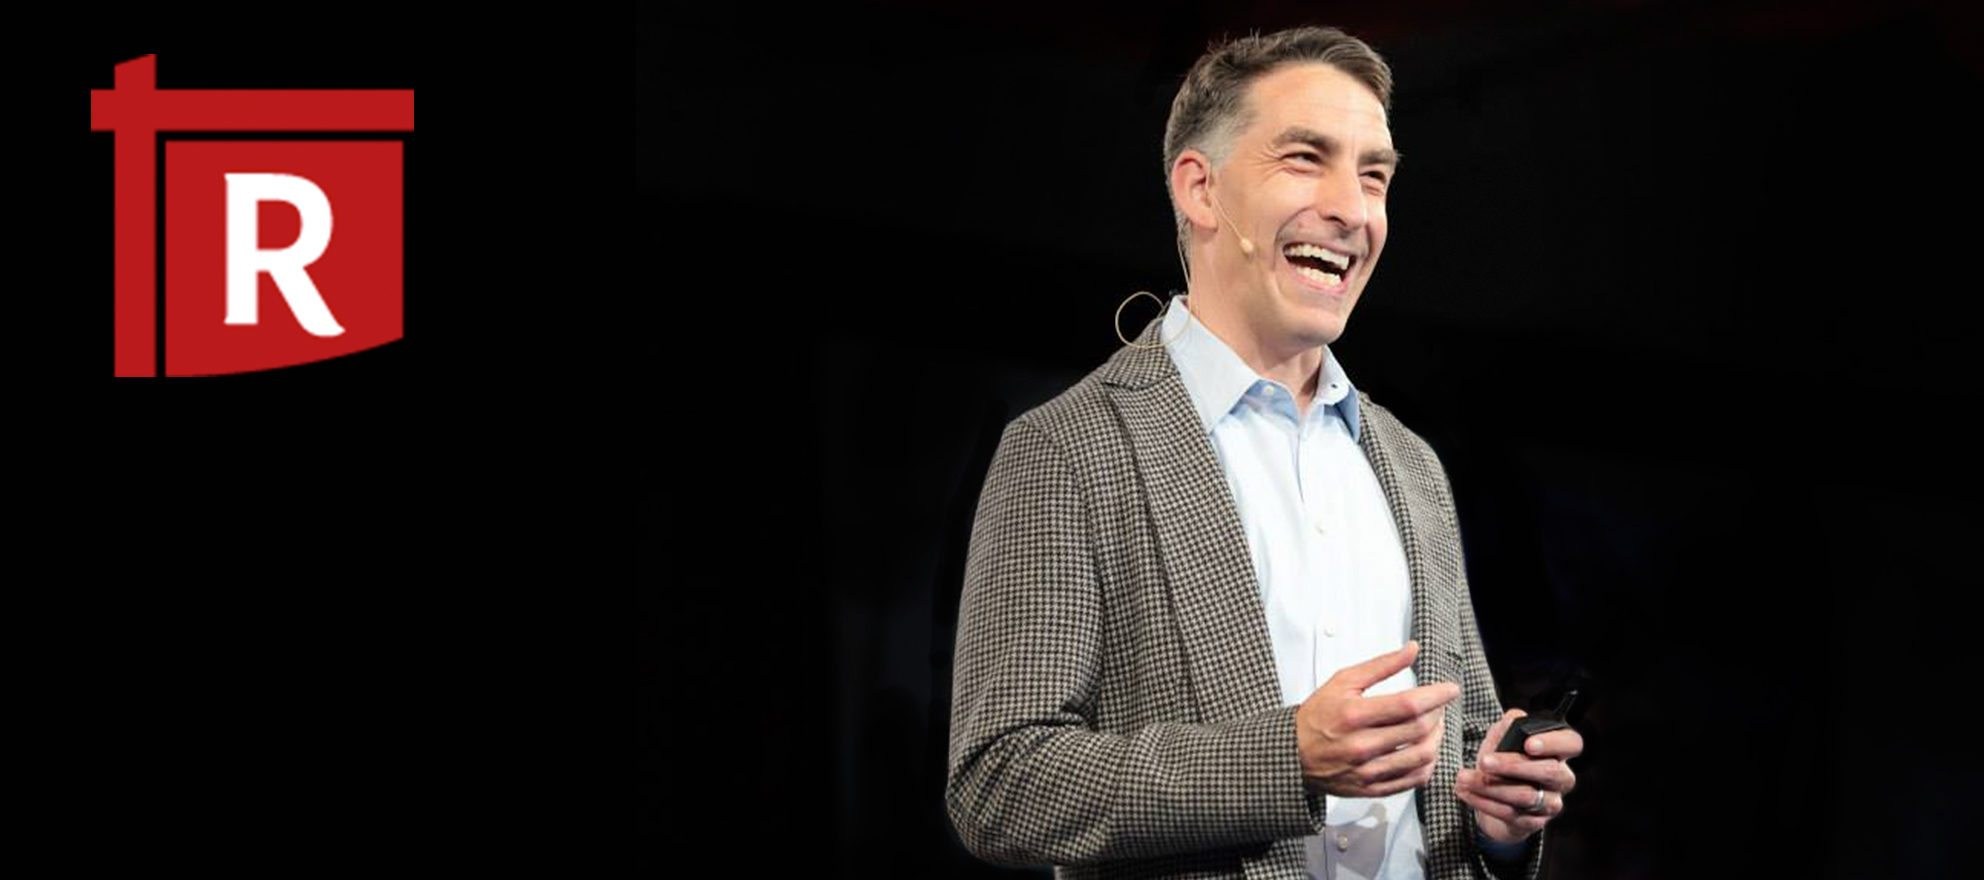 Redfin's got another $71 million to break into new markets and build out its technology